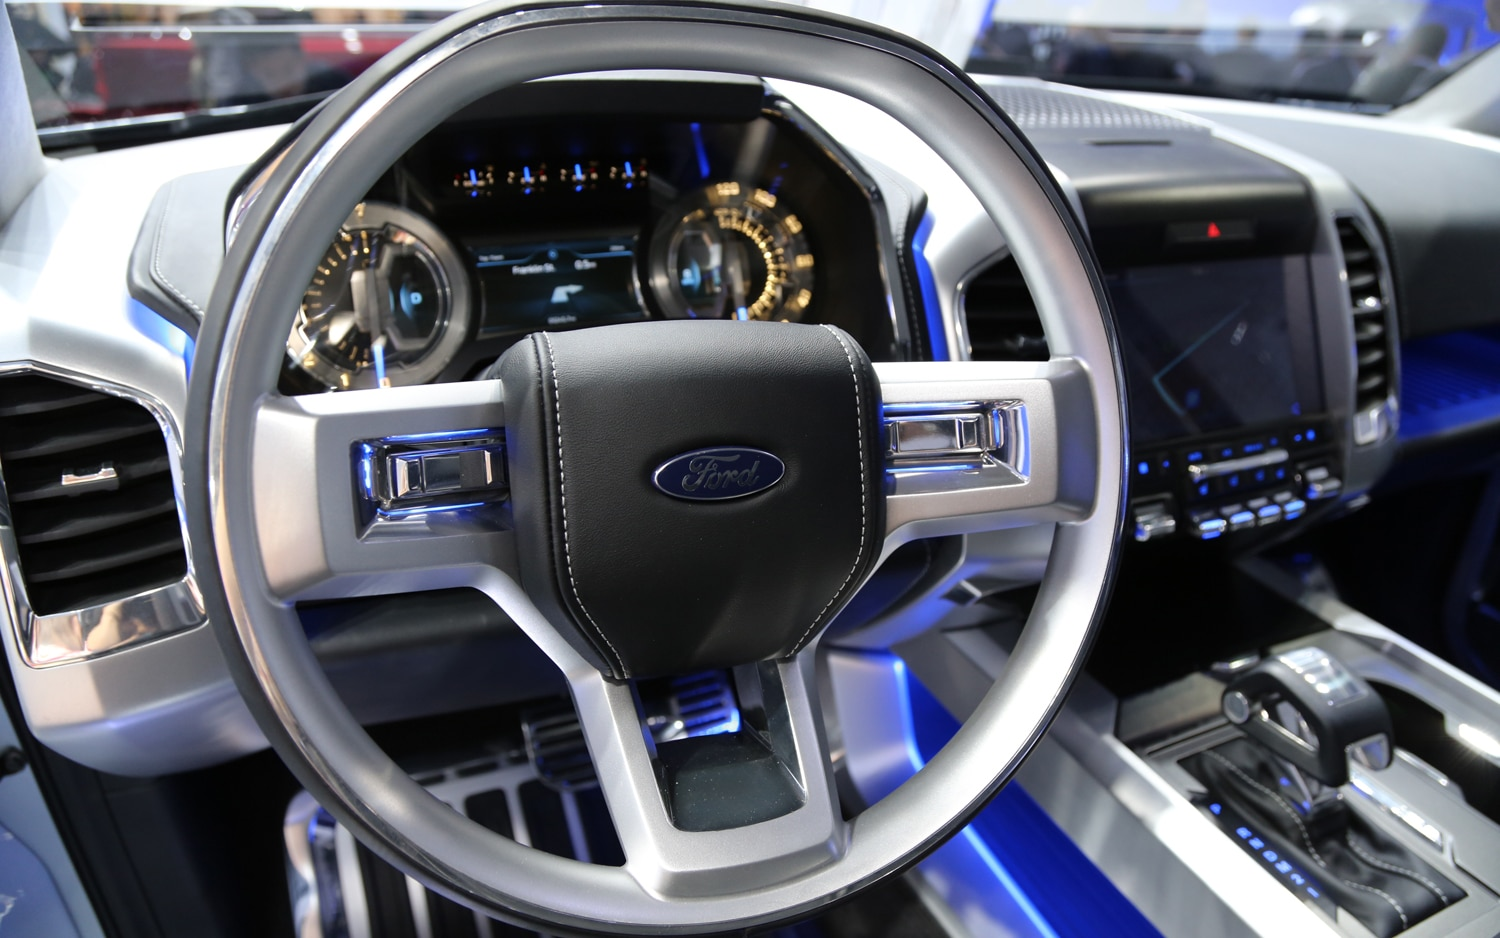 Ford Atlas Concept Steering Wheel